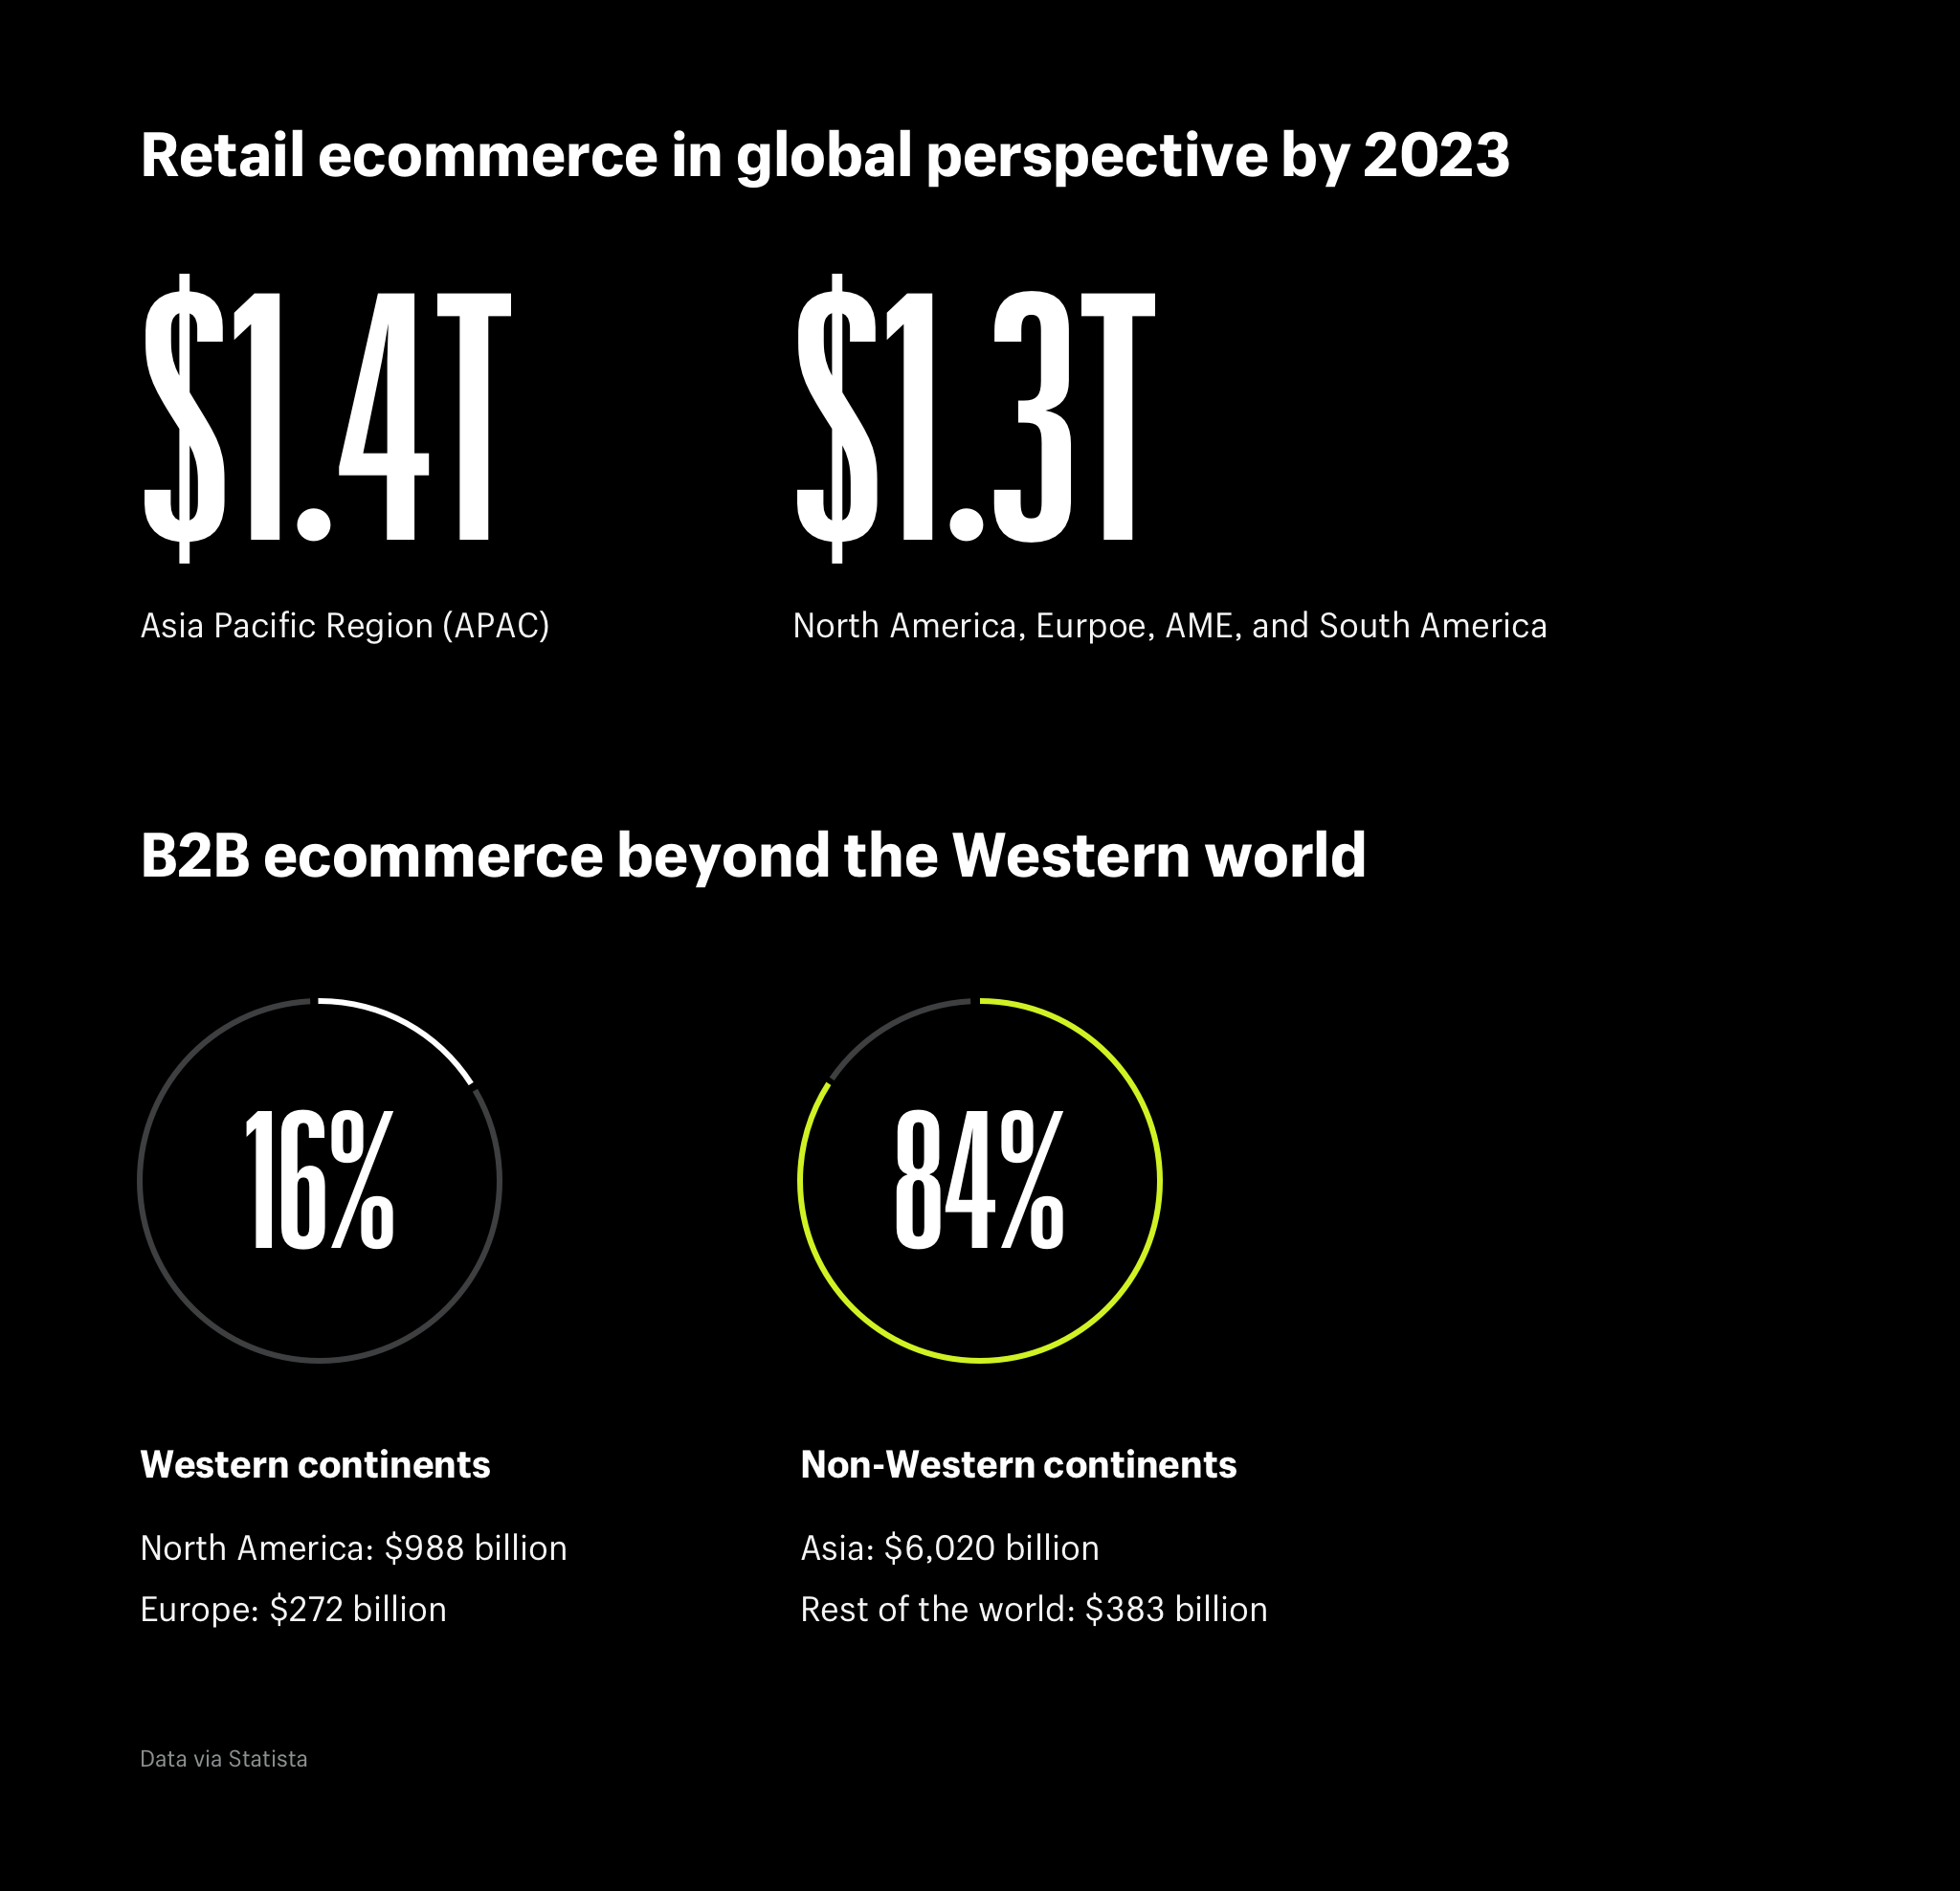 Retail ecommerce in global perspective and B2B ecommerce beyond the Western world